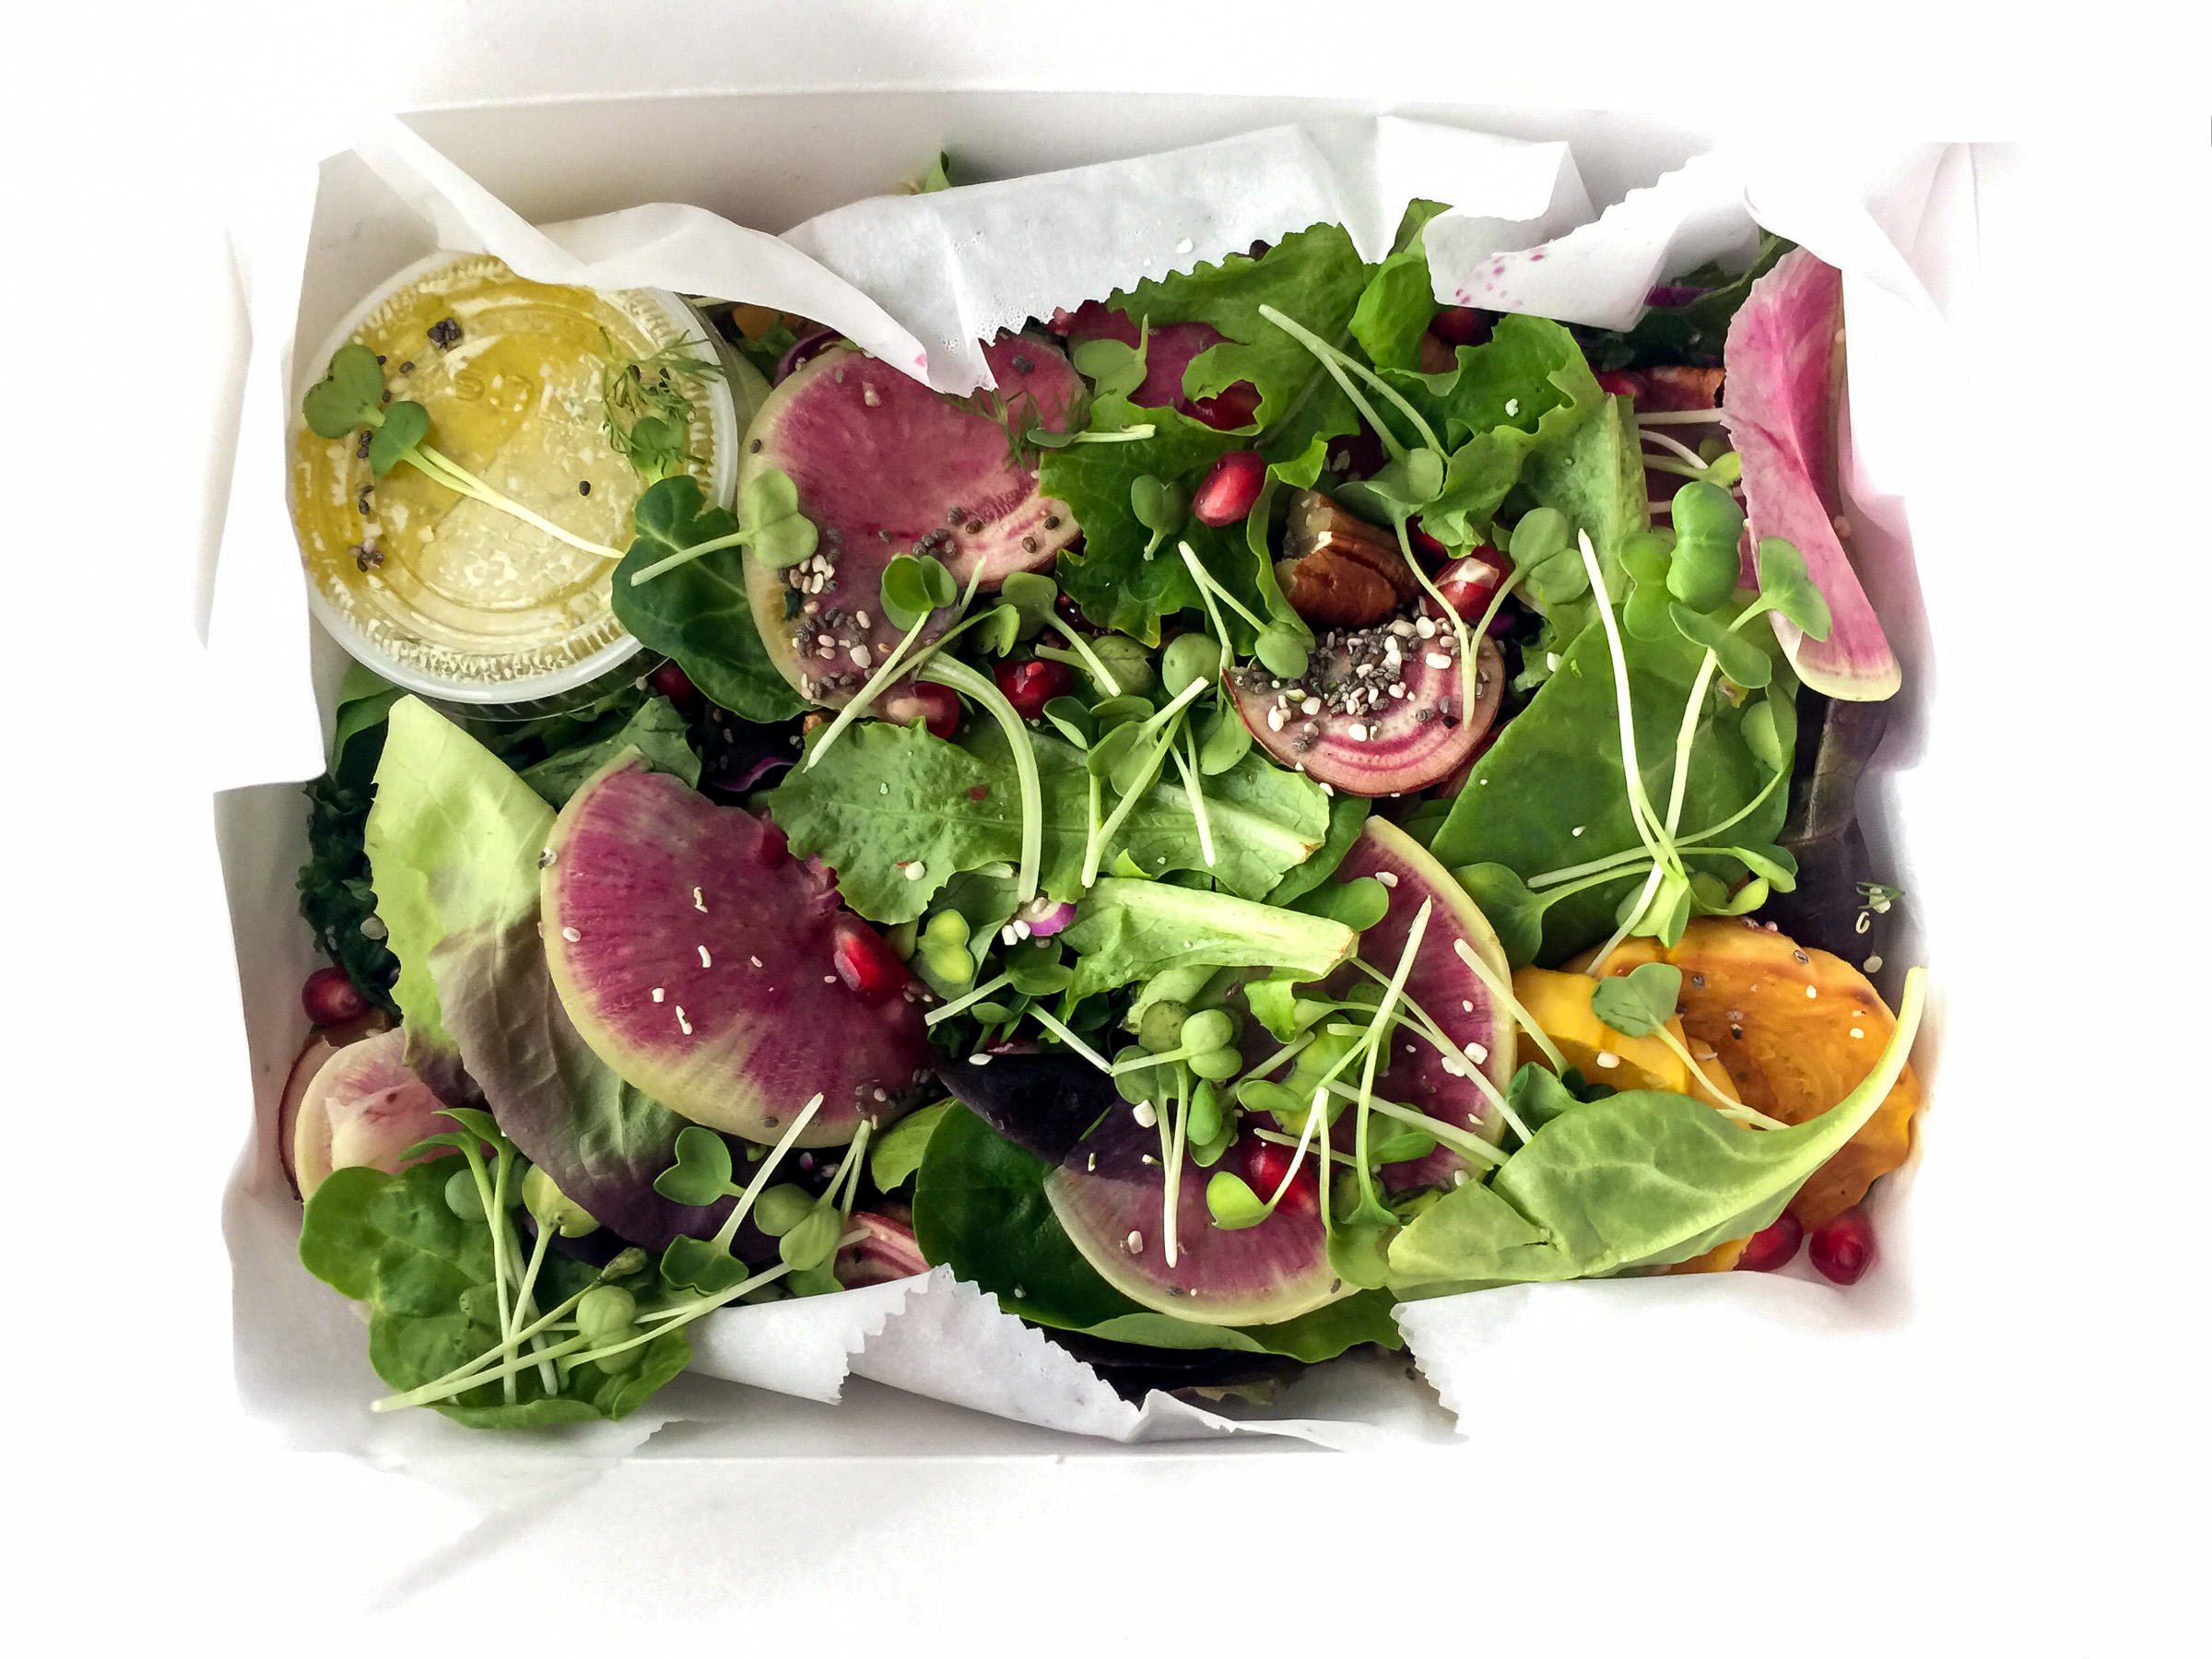 Superfood salad boxed